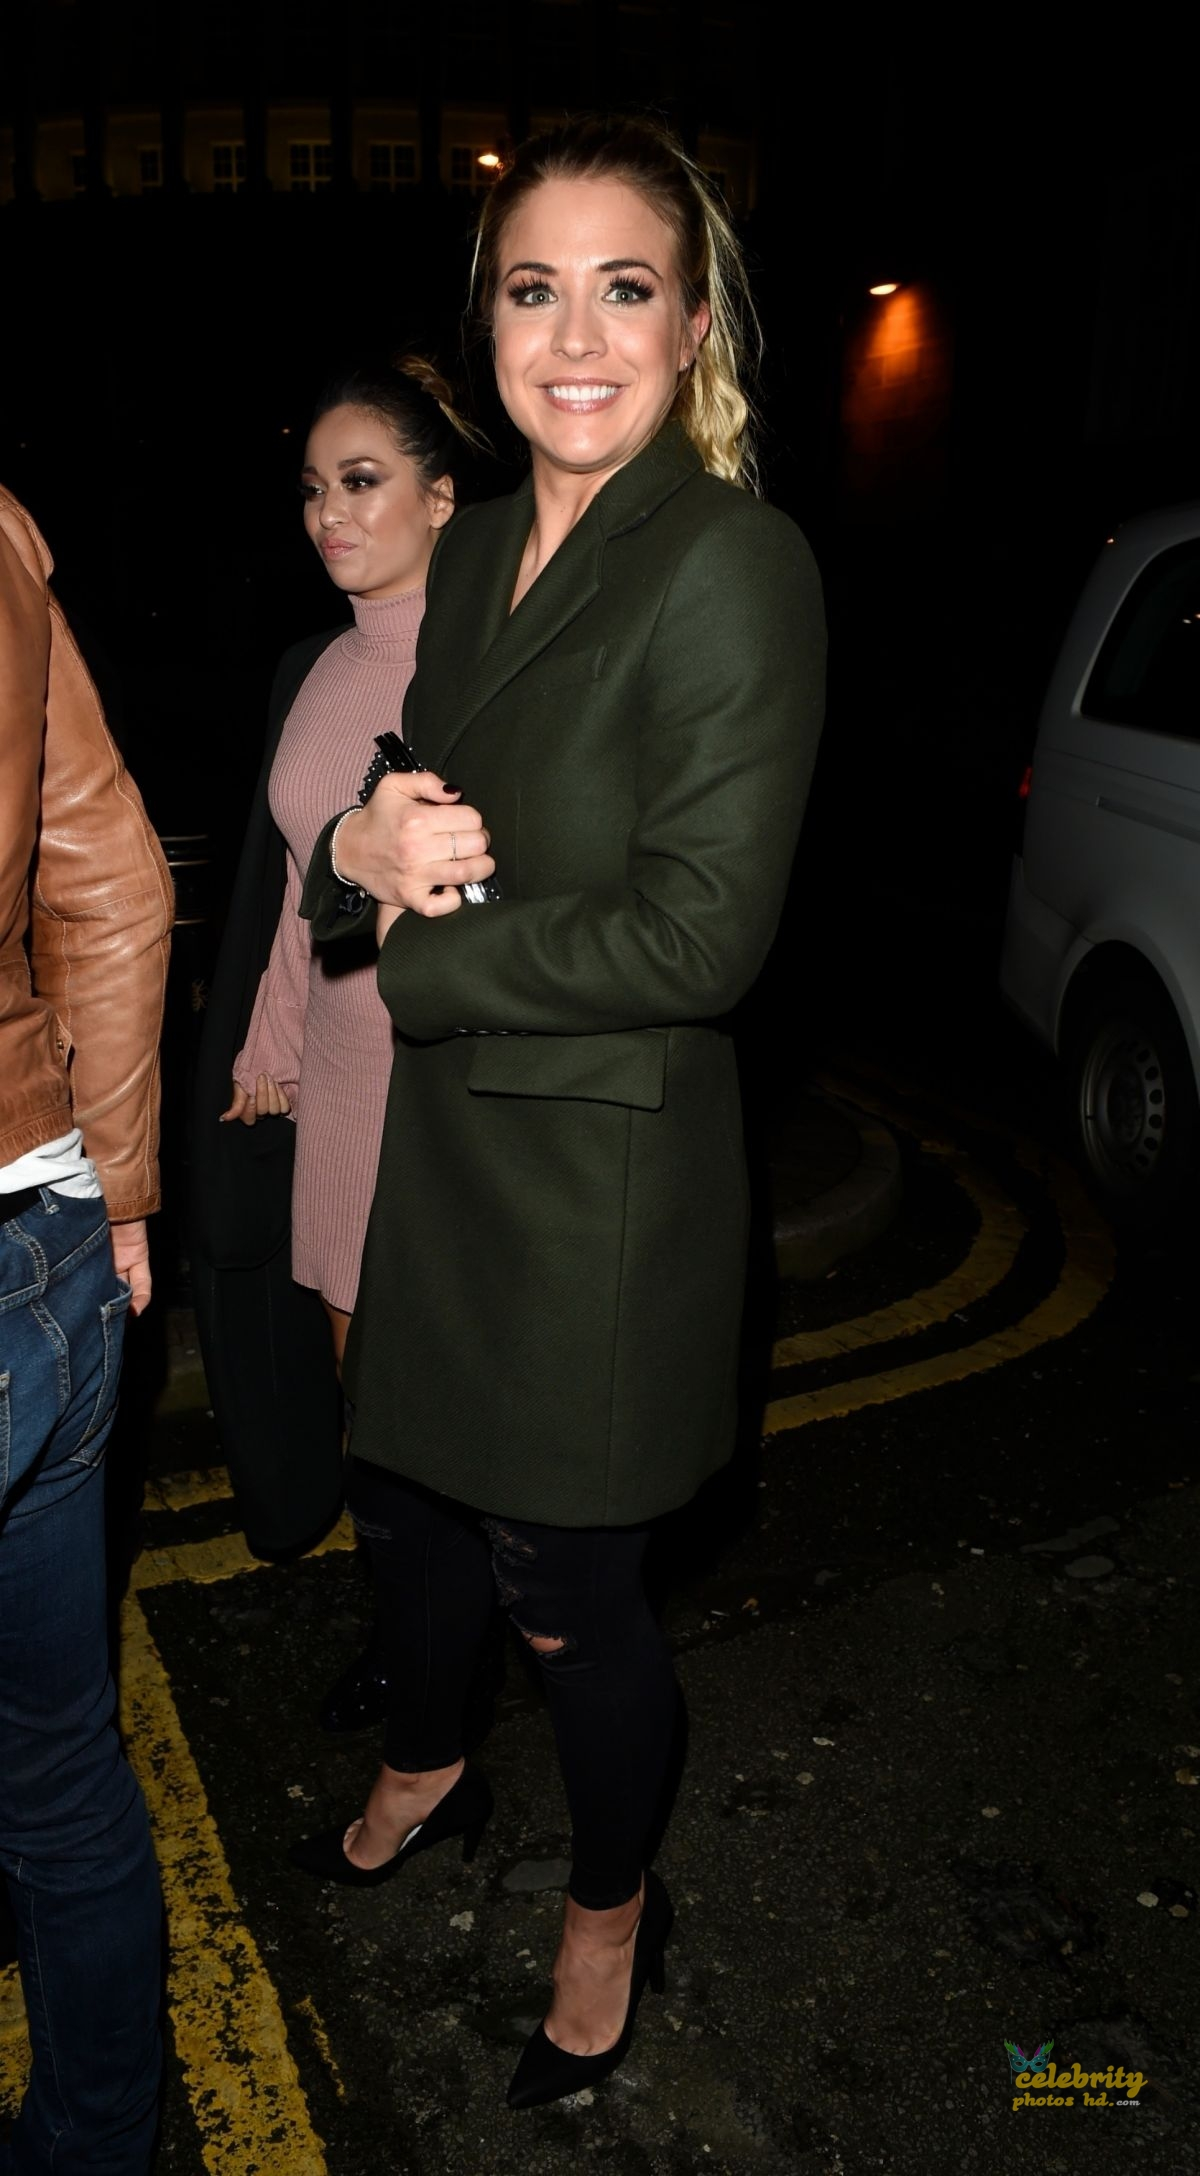 GEMMA ATKINSON Night Out in Manchester (3)